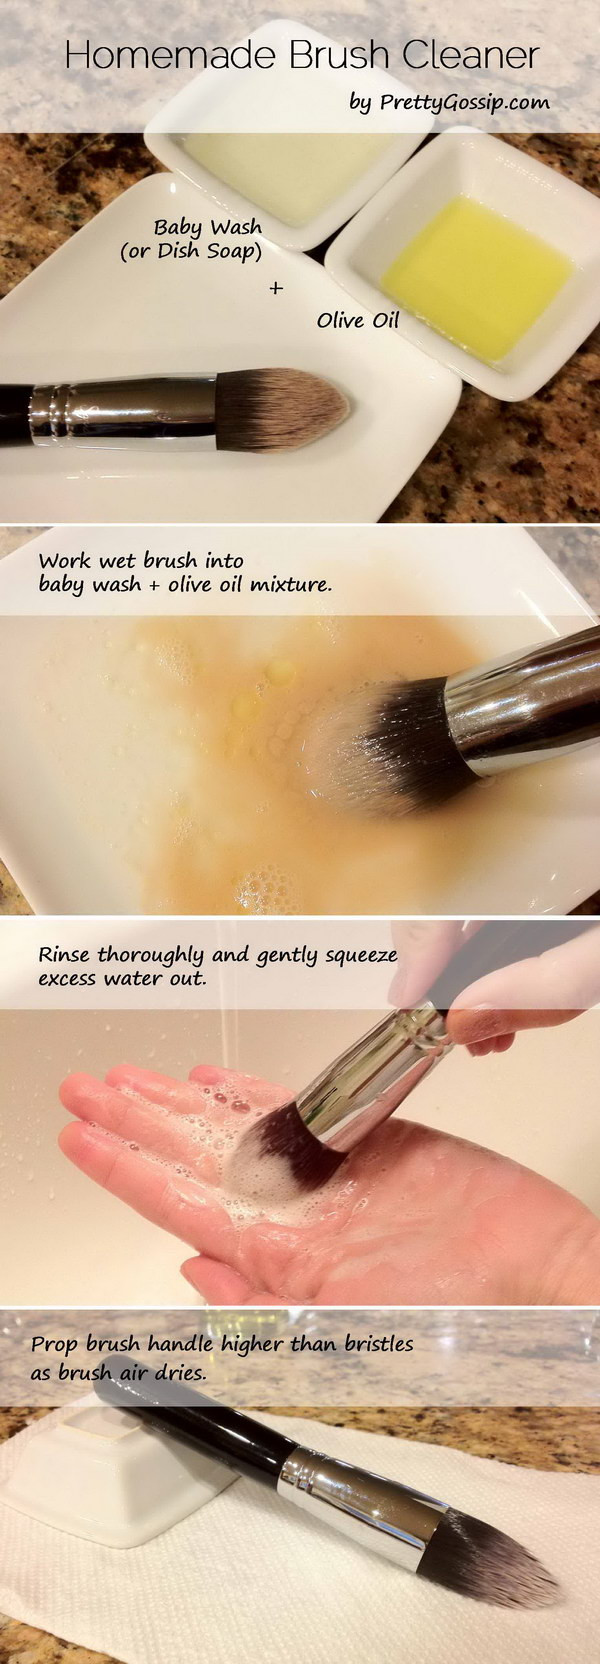 Best ideas about DIY Makeup Brush Cleaner . Save or Pin 15 Creative Makeup Cleaning Ideas & Tutorials Now.